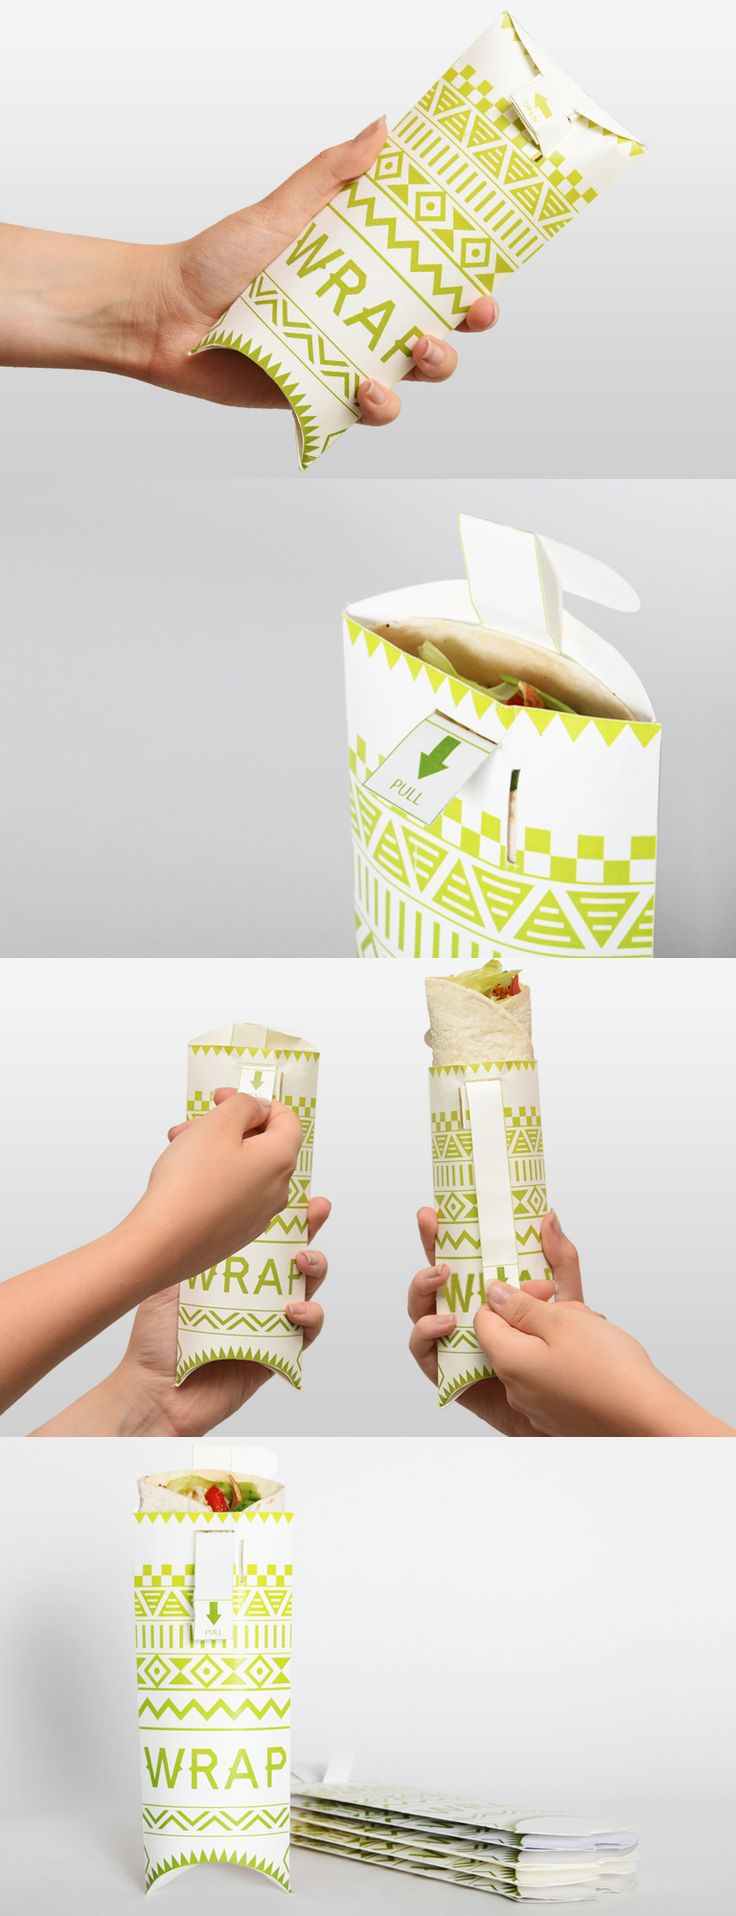 Pull Wrap Packaging by Matthijs Kok